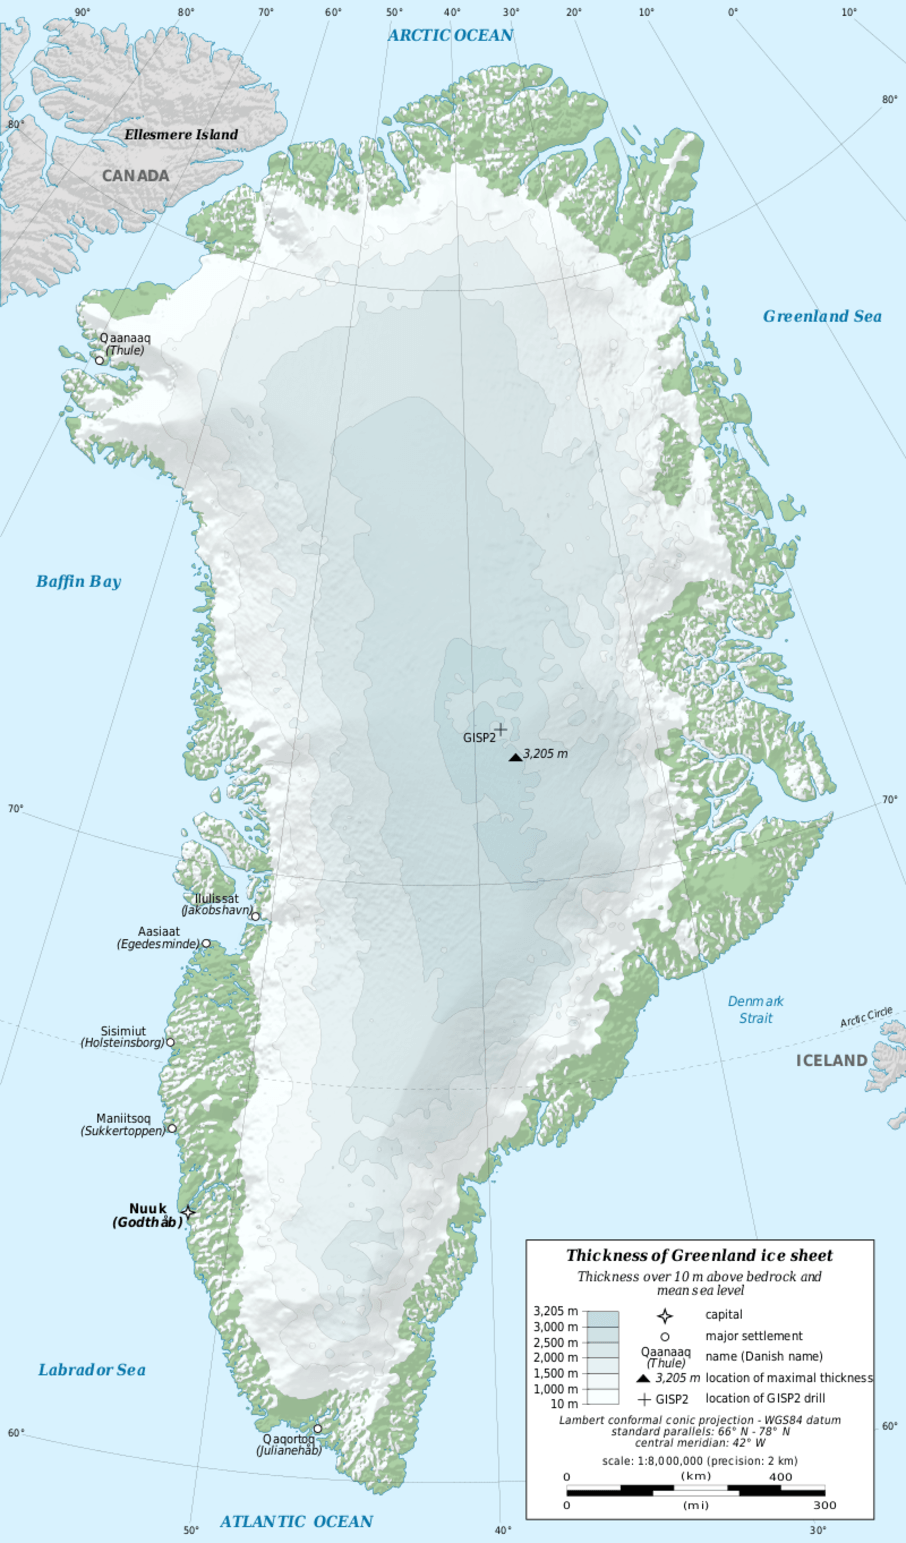 Most of Greenland is covered by more than a kilometre of ice.  Image credit: Eric Gaba / NGDC [Licensed under CC BY 4.0]